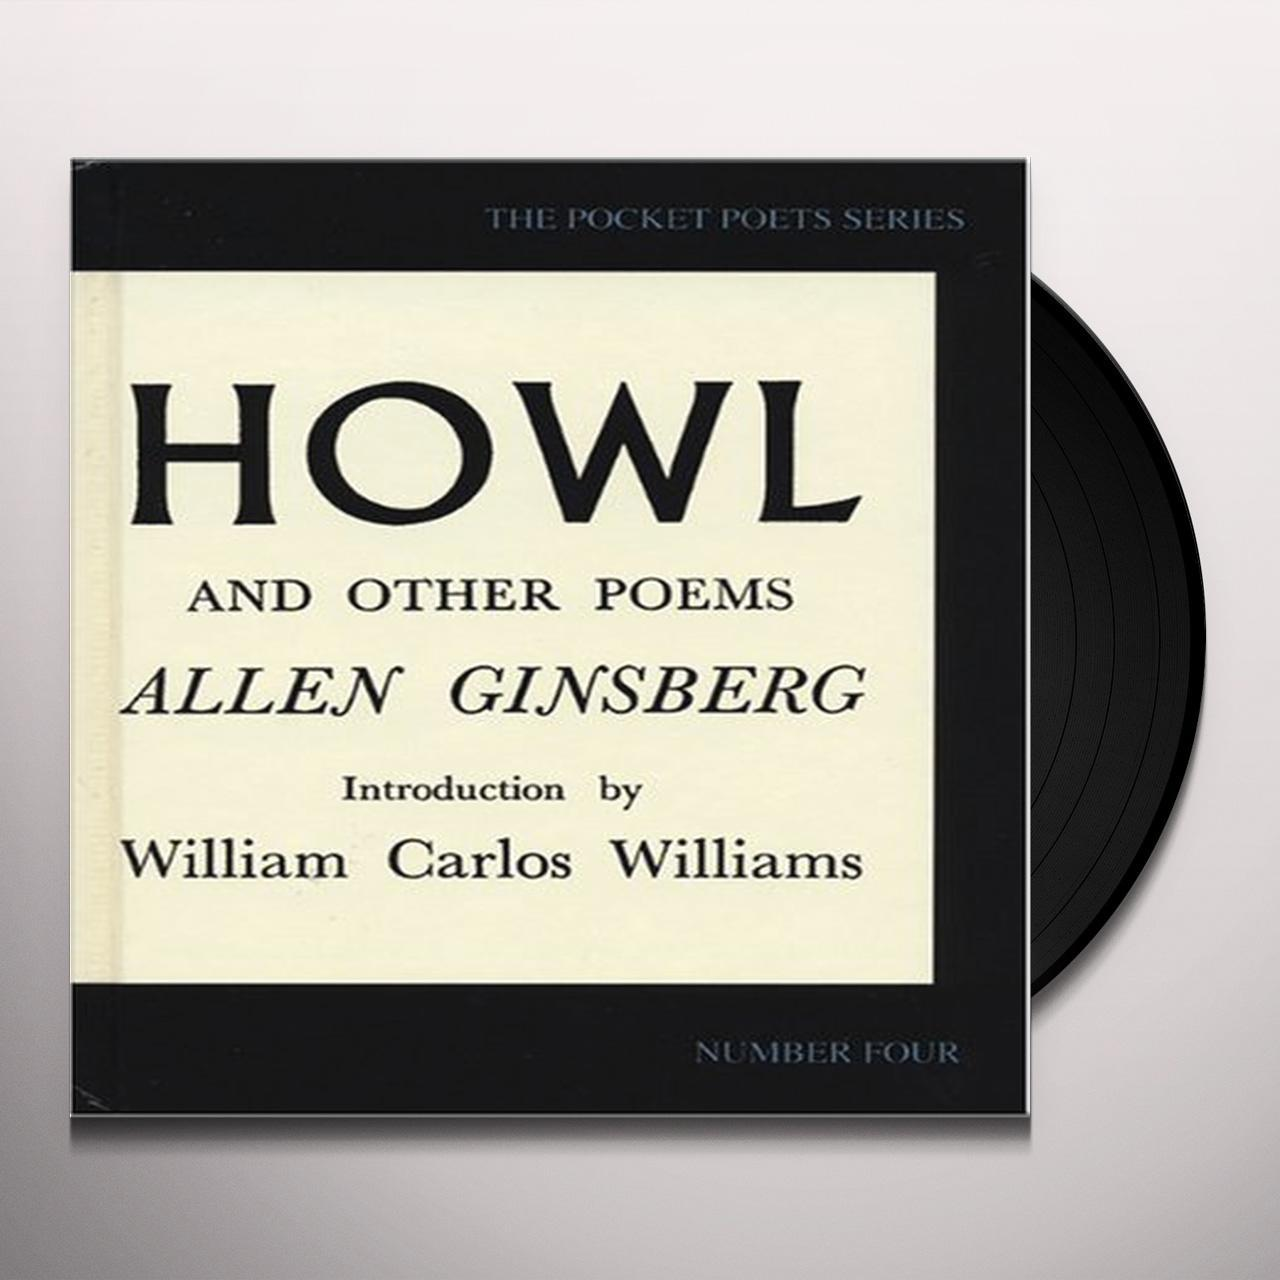 "allen ginsberg and howl analysis and response The poem that changed america enjoyed howl"" by allen ginsberg published in respond to and elongating the response still however containing it."